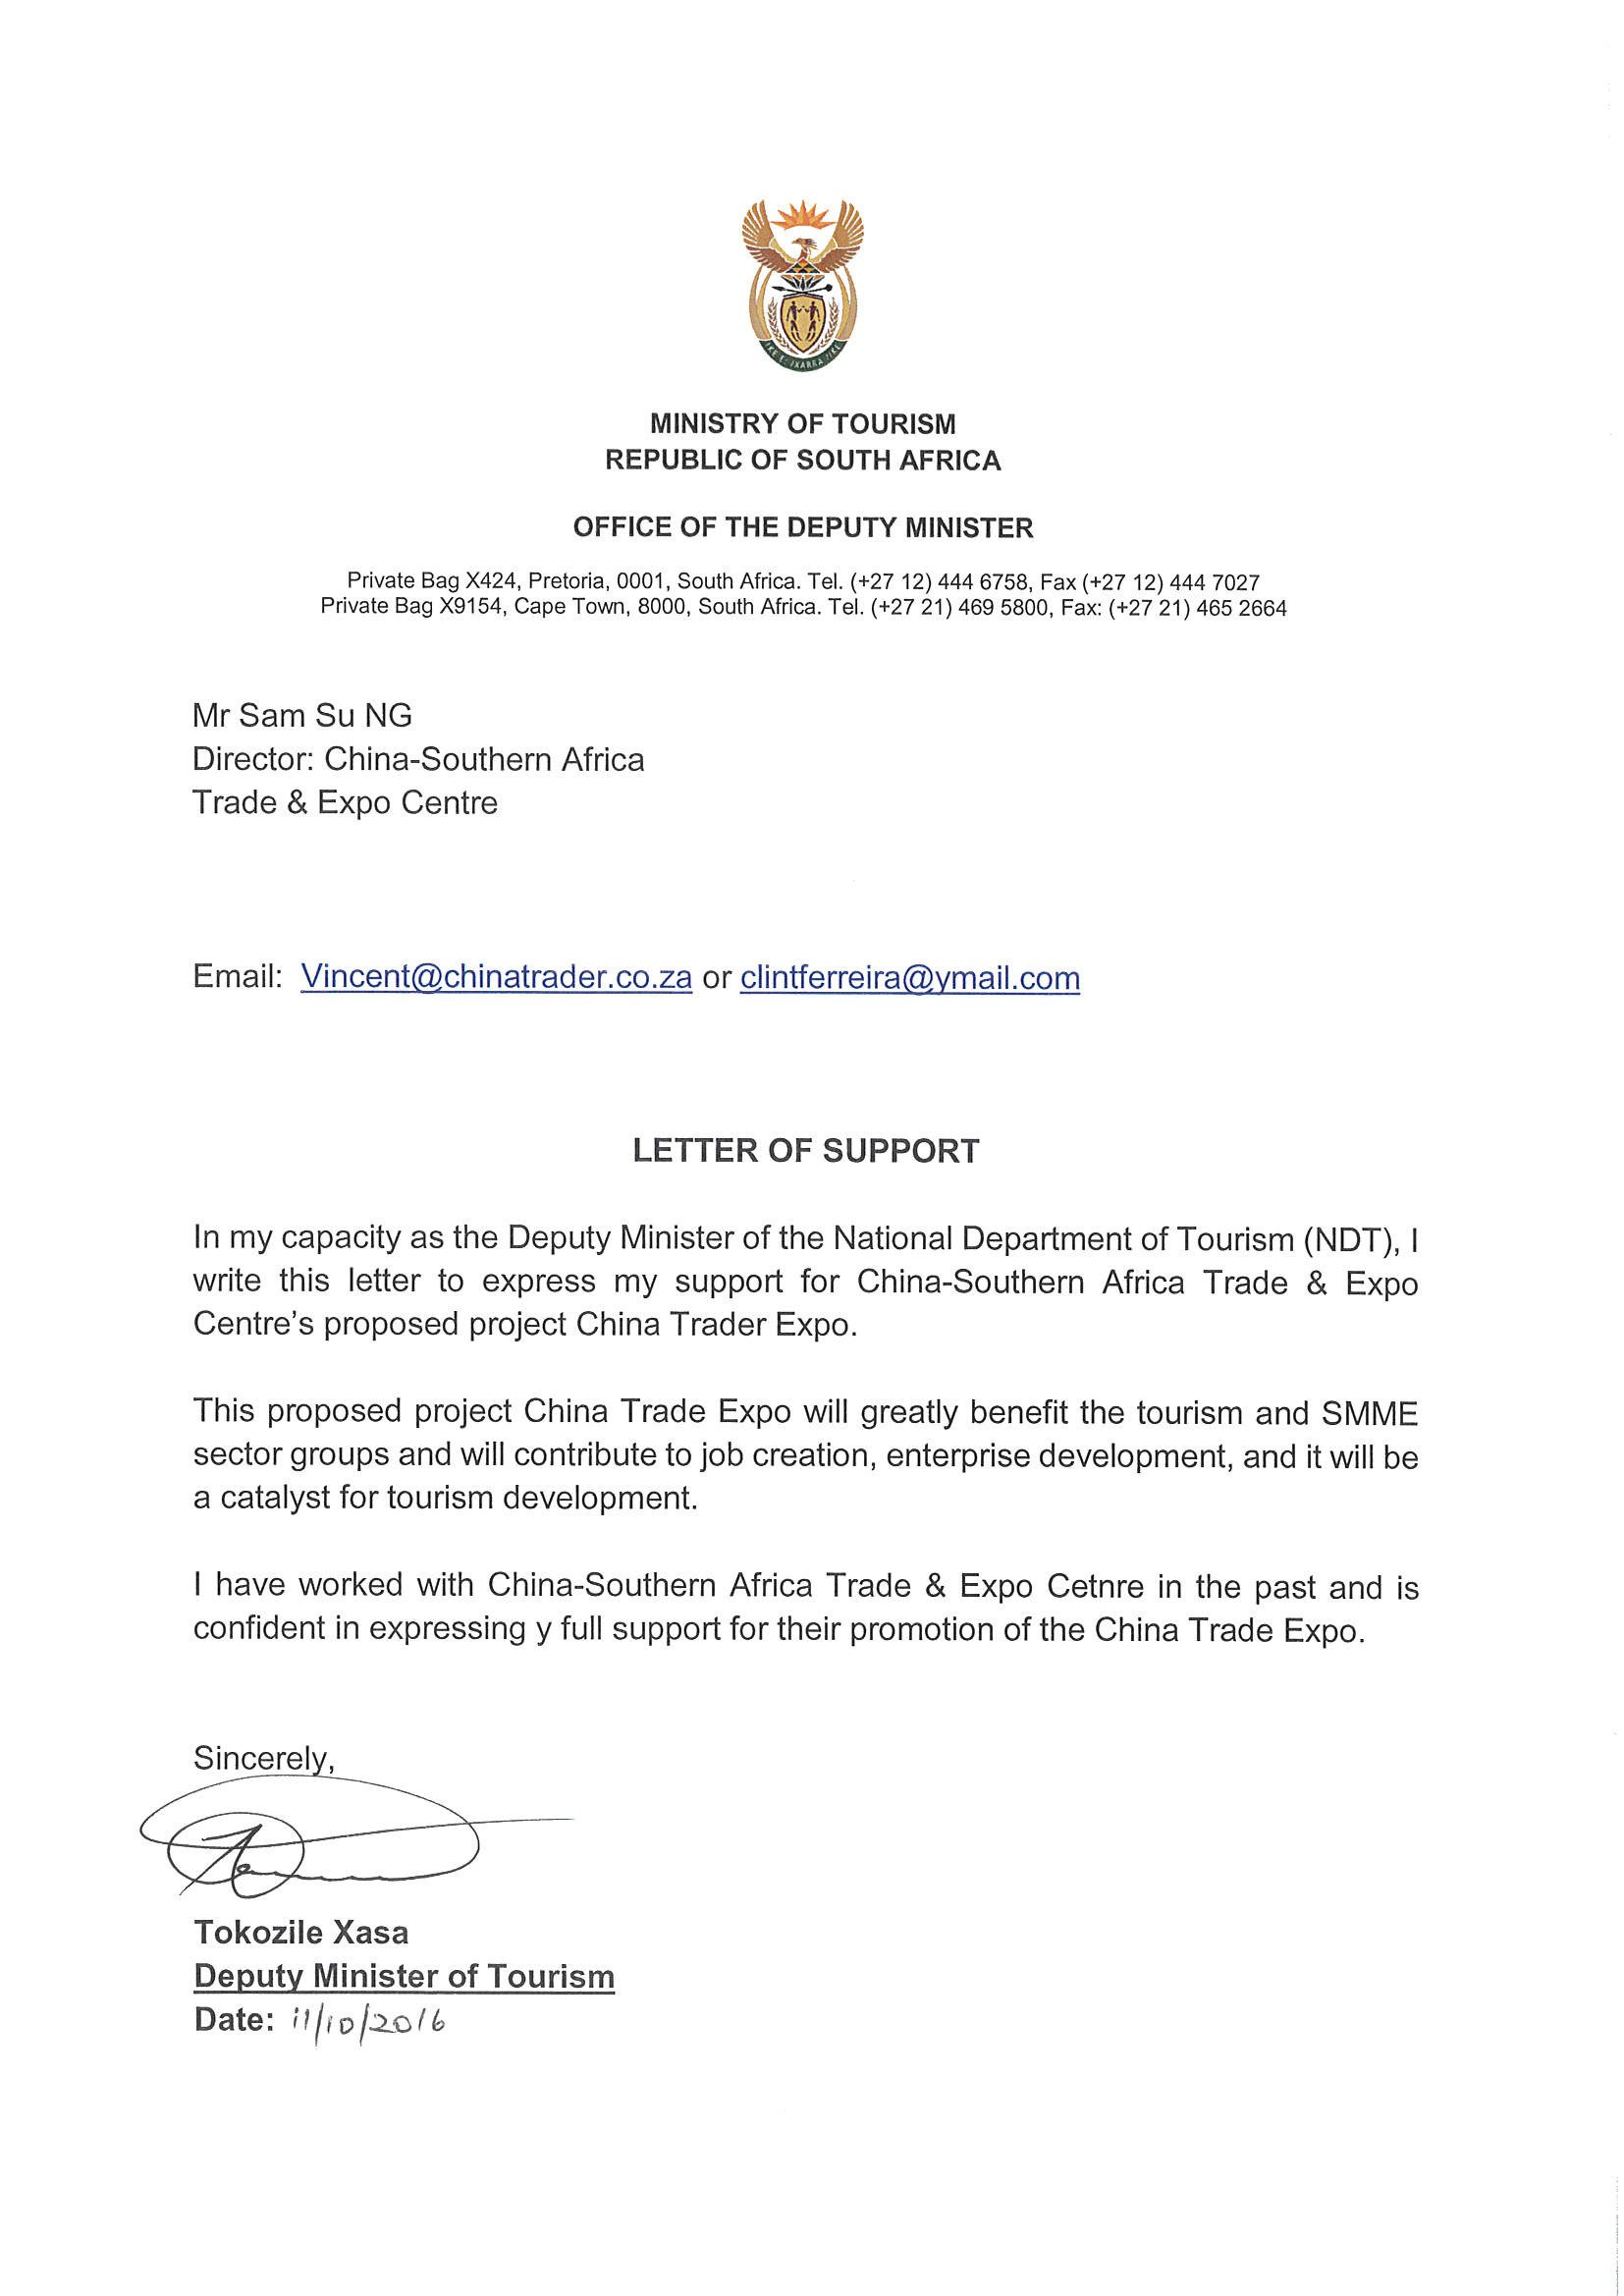 Ministry Support Letter Template the National Department Of tourism Supports China Trader